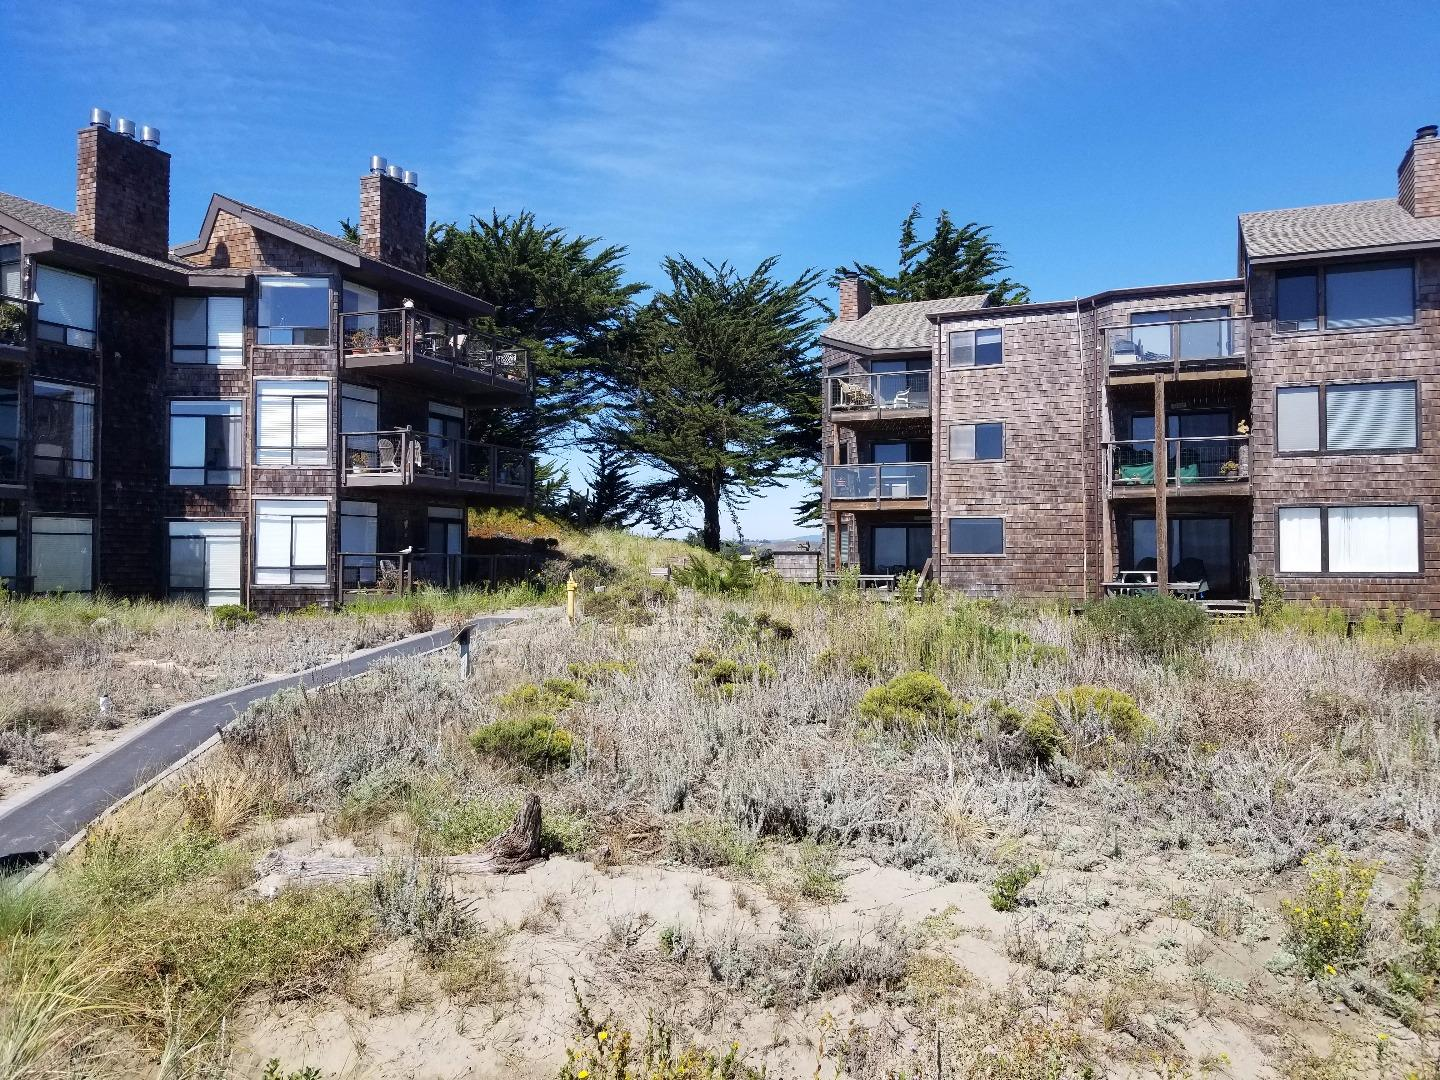 Additional photo for property listing at 73 Pelican Point  La Selva Beach, California 95076 Estados Unidos